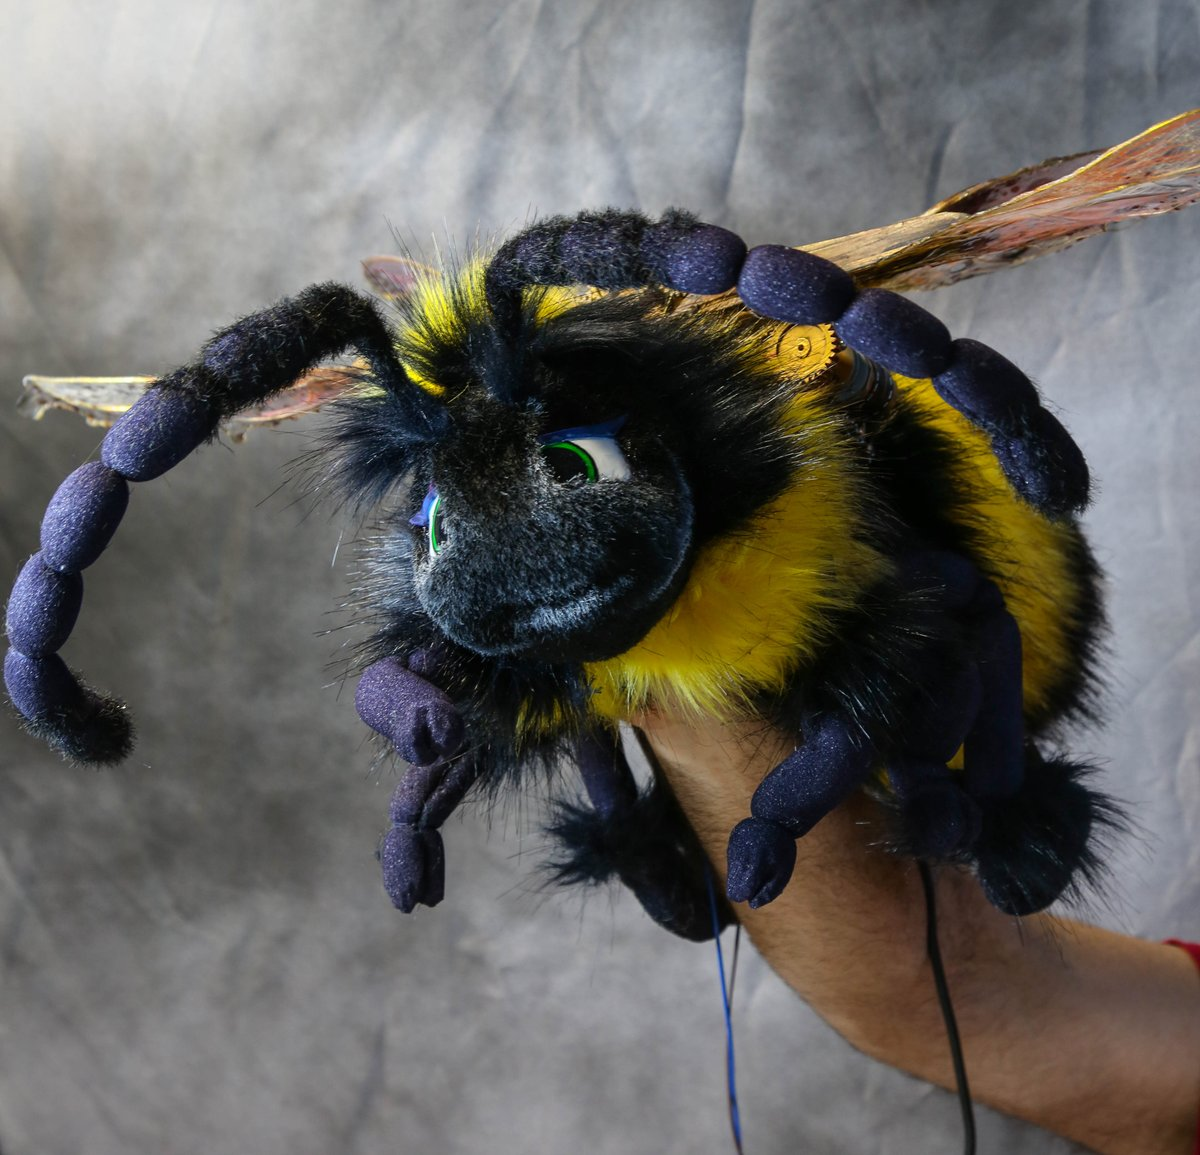 Pictures of the fully working Mechanical steampunk Bee. Whose role sadly got cut down, but he was filmed spead up and shrunk down on the show. #yonderland #tv #comedy #sky #workingtitle #puppet #puppetmaker #bee #sculpture #characterdesign #Steampunk #Clockwork #Motorised #cute